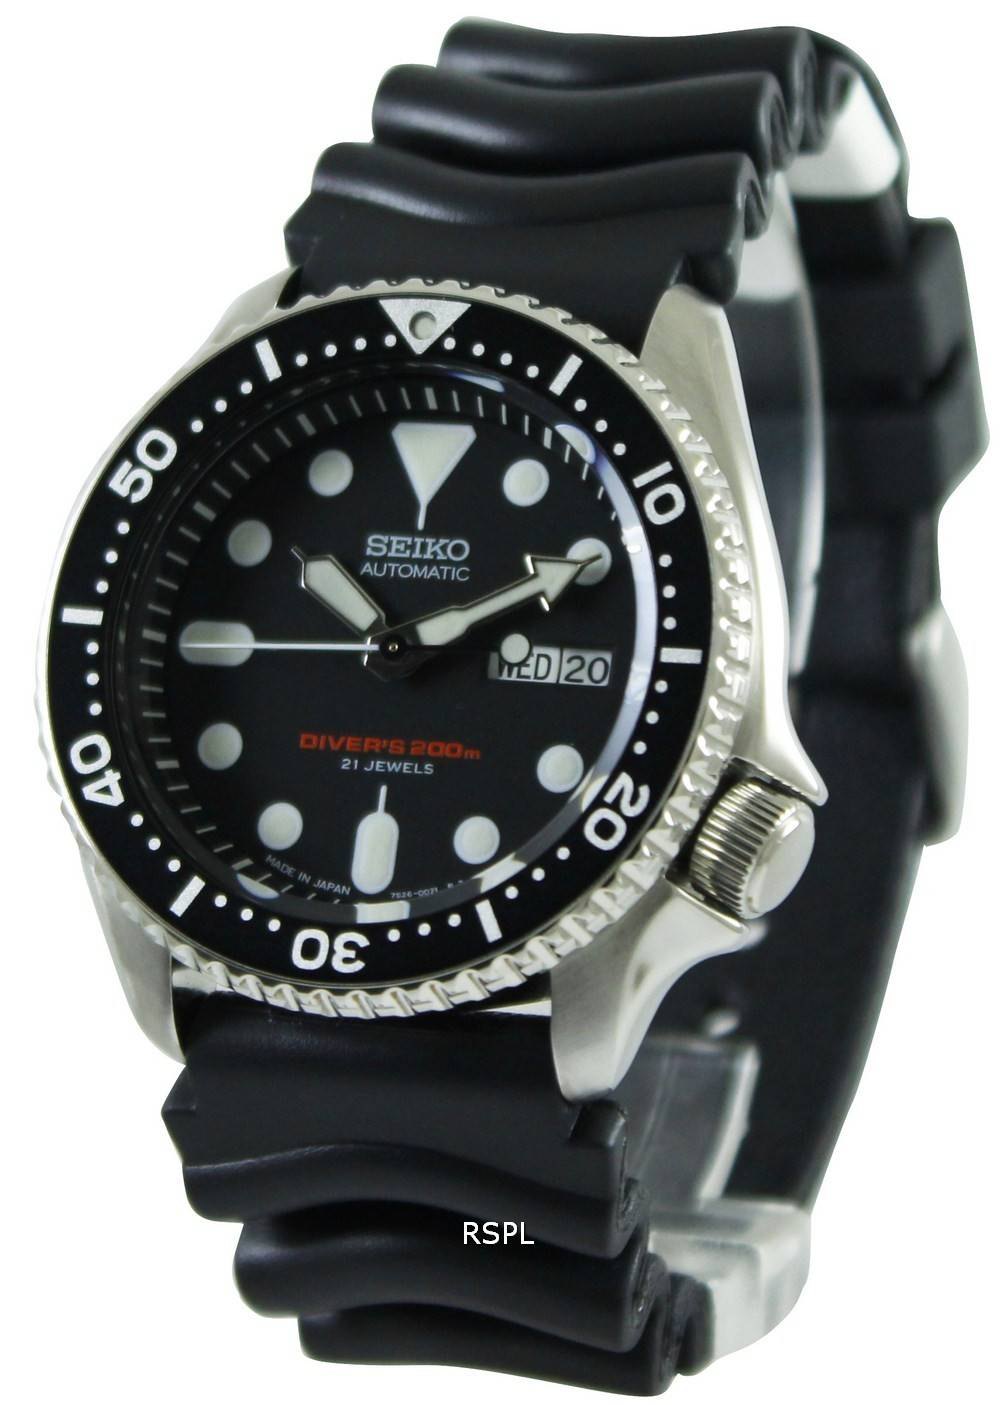 Seiko Automatic Divers 200M SKX007J1 Watch - CityWatches.co.nz 4c718a7724